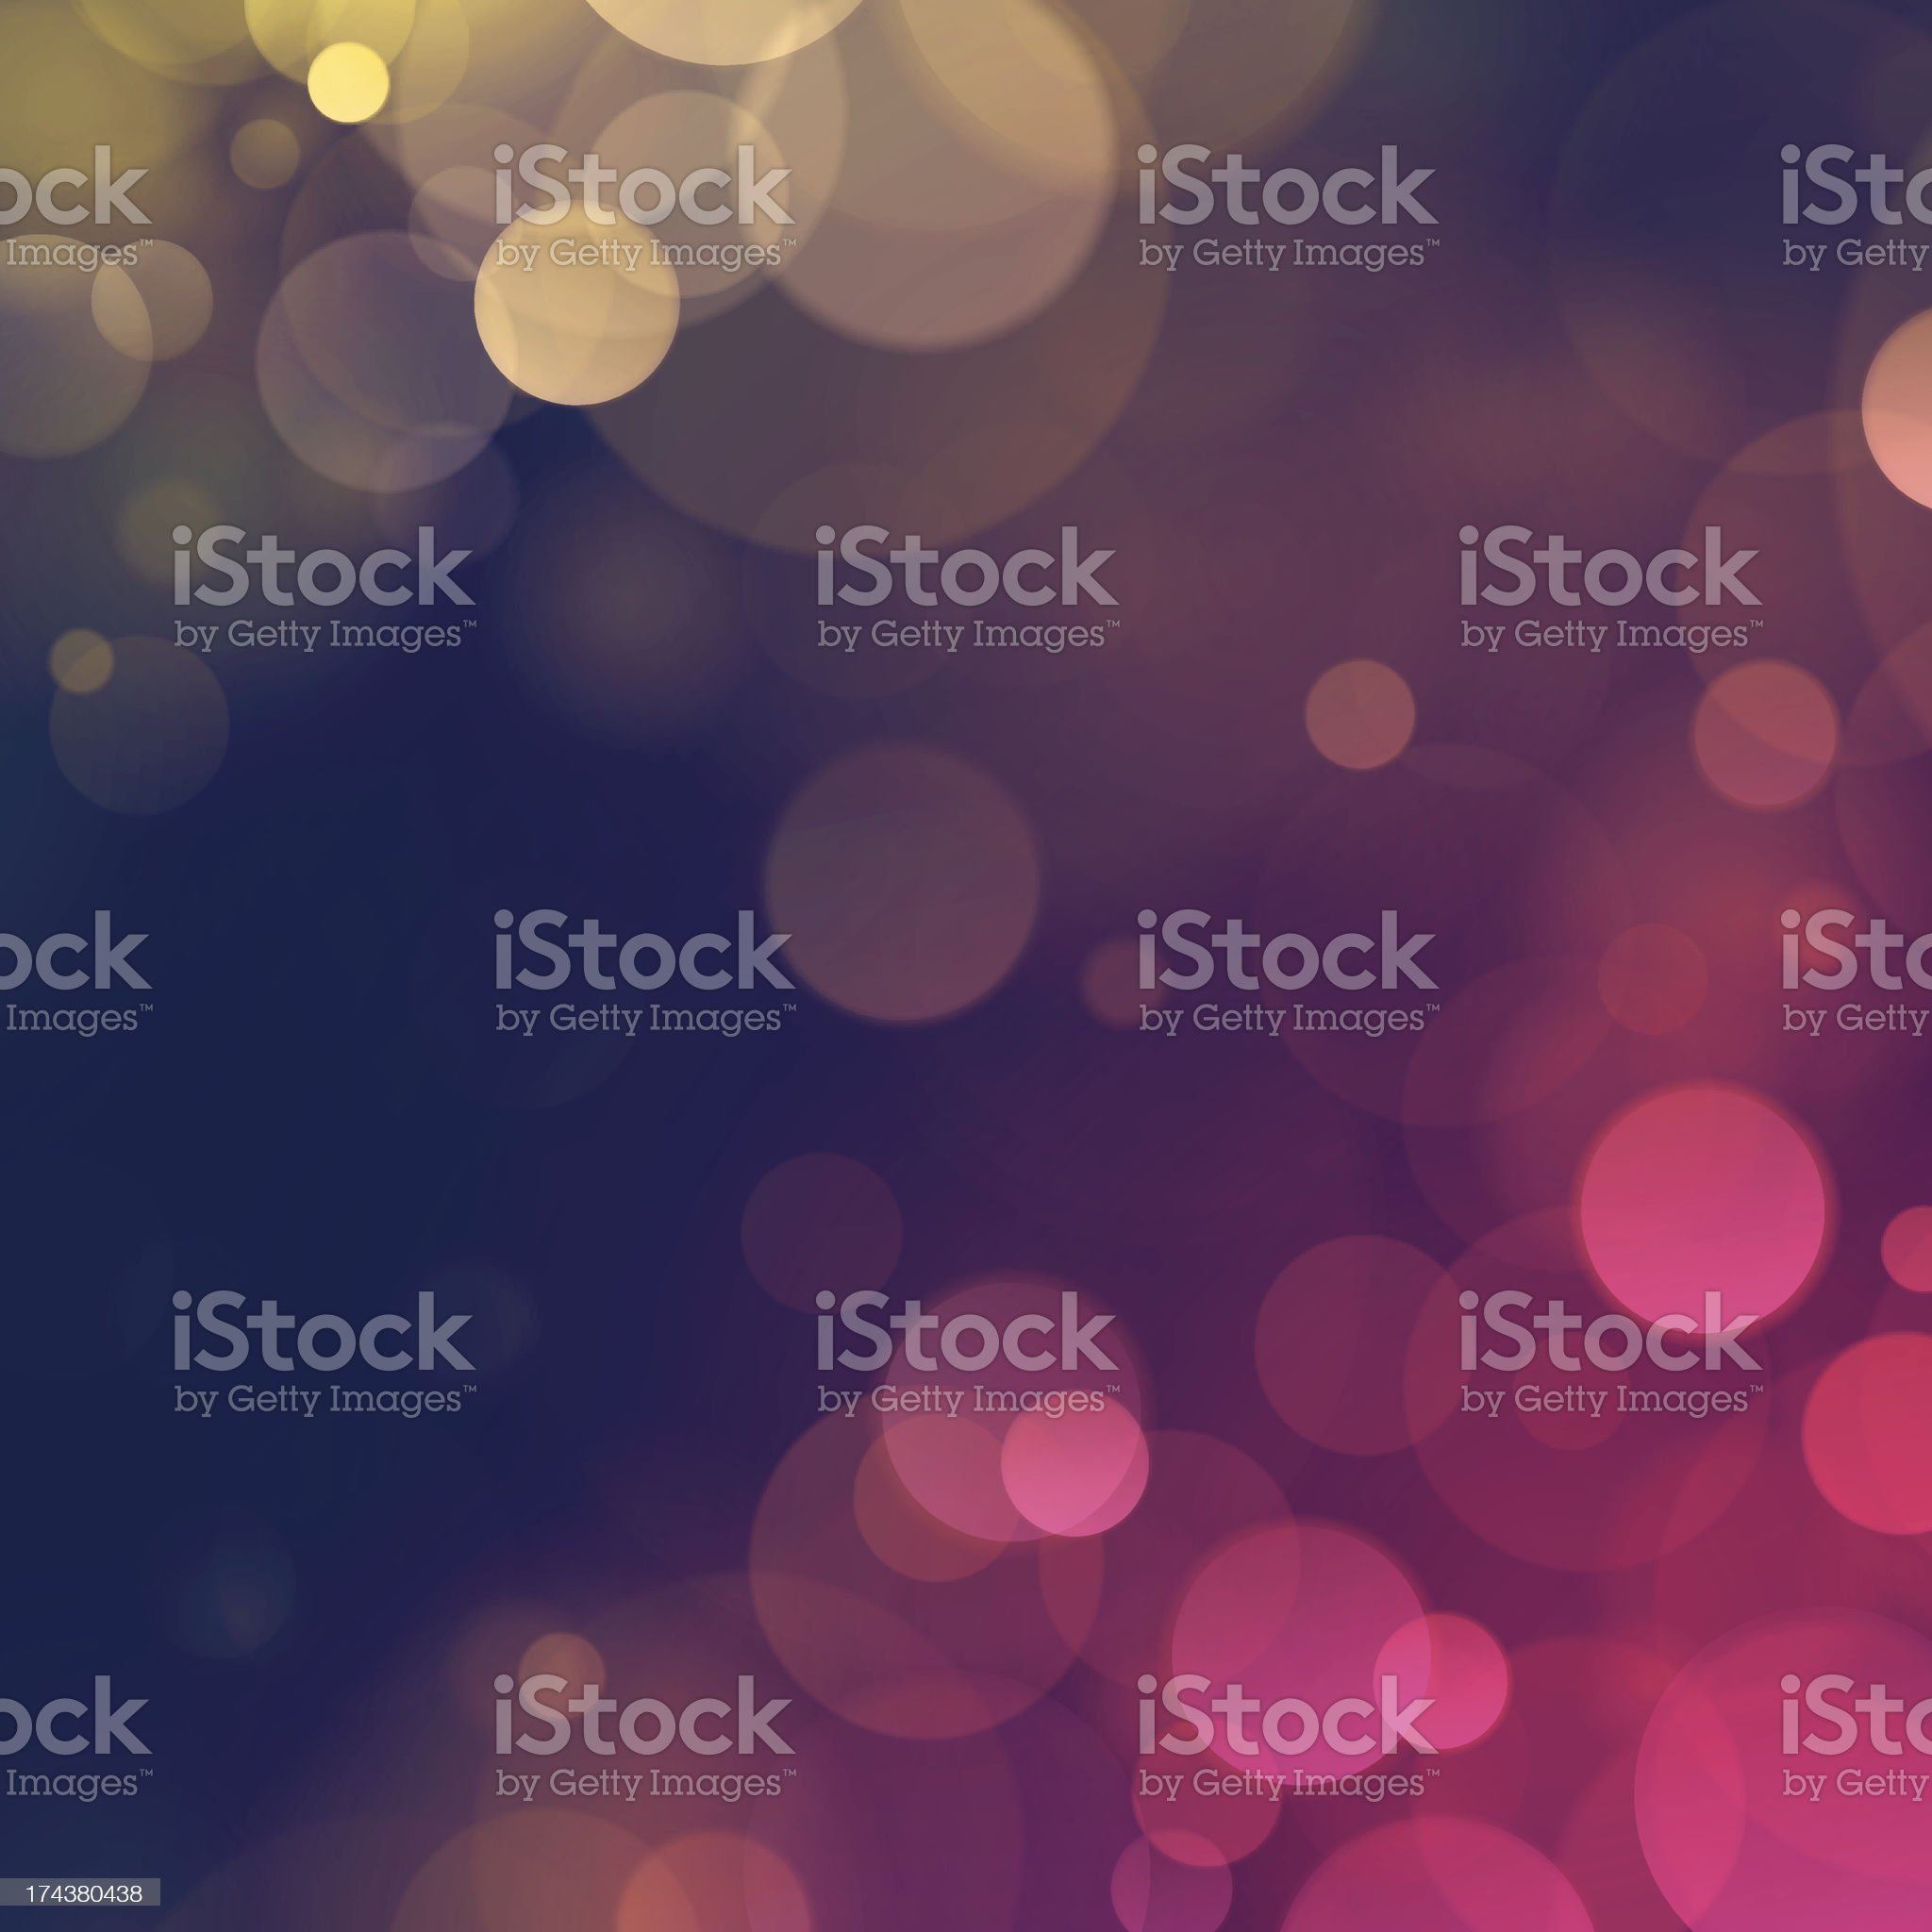 Vintage Autumn Fall Bokeh Defocus Blurry Lights Background royalty-free stock vector art